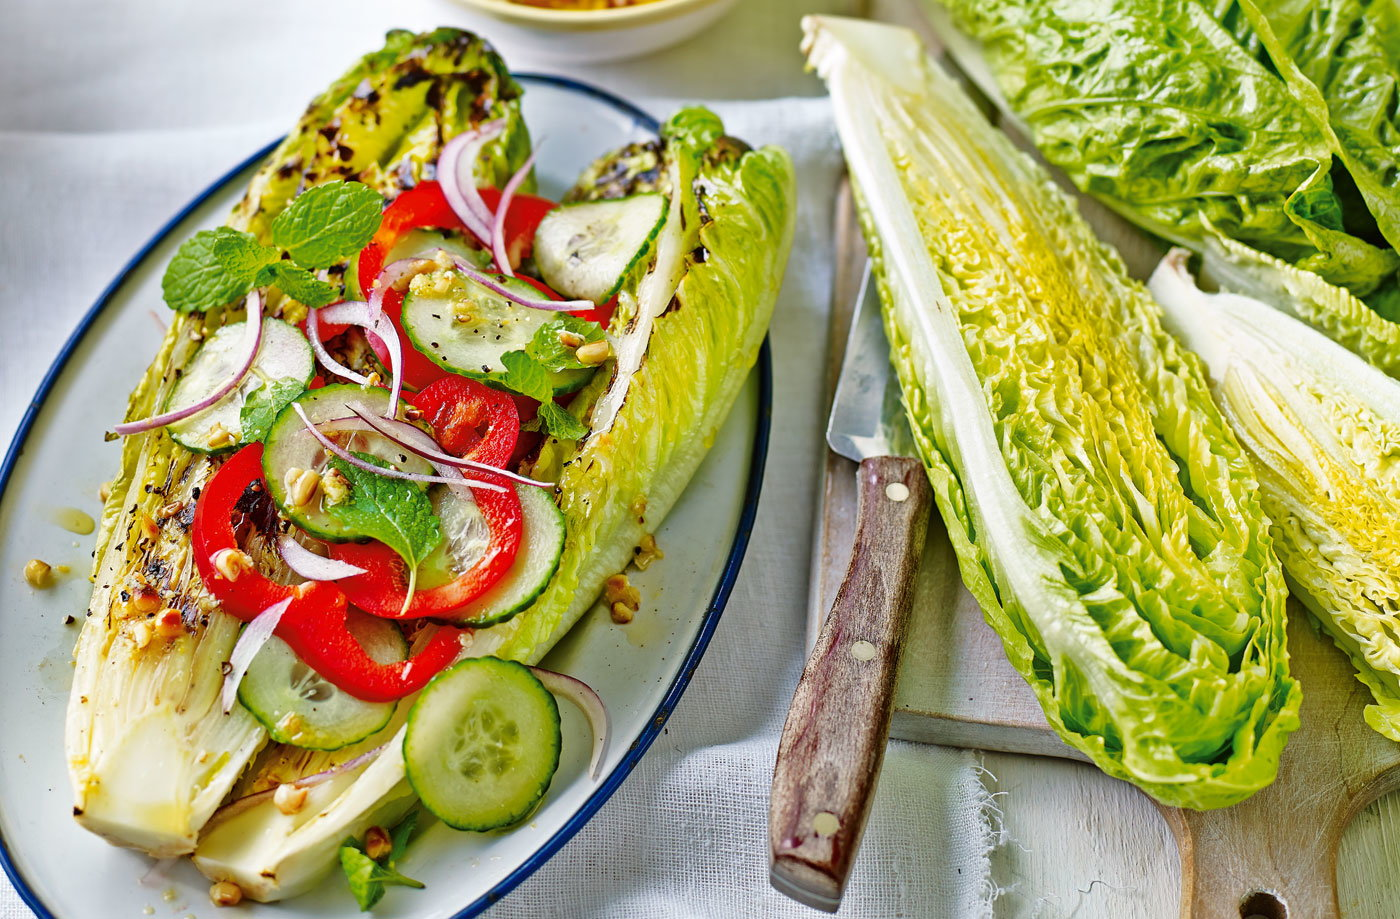 Grilled romaine lettuce with dressing | Tesco Real Food